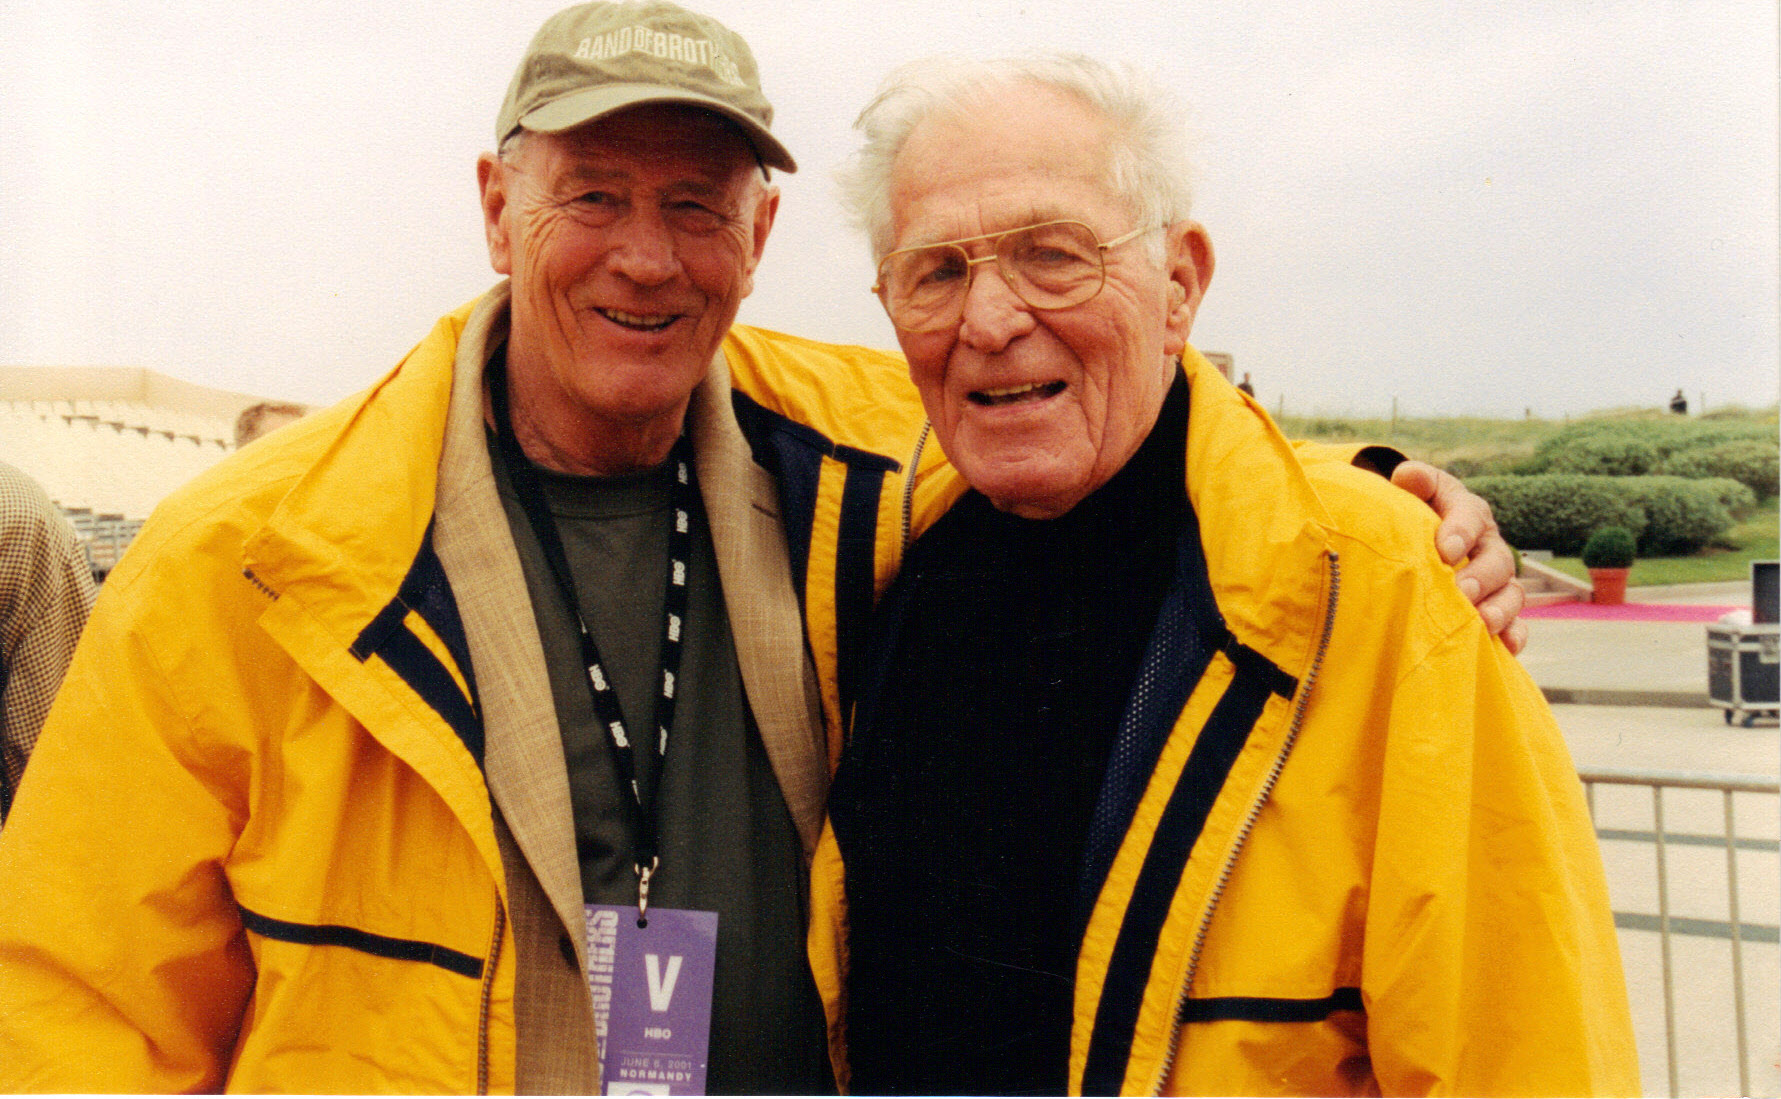 Stephen Ambrose and Dick Winters